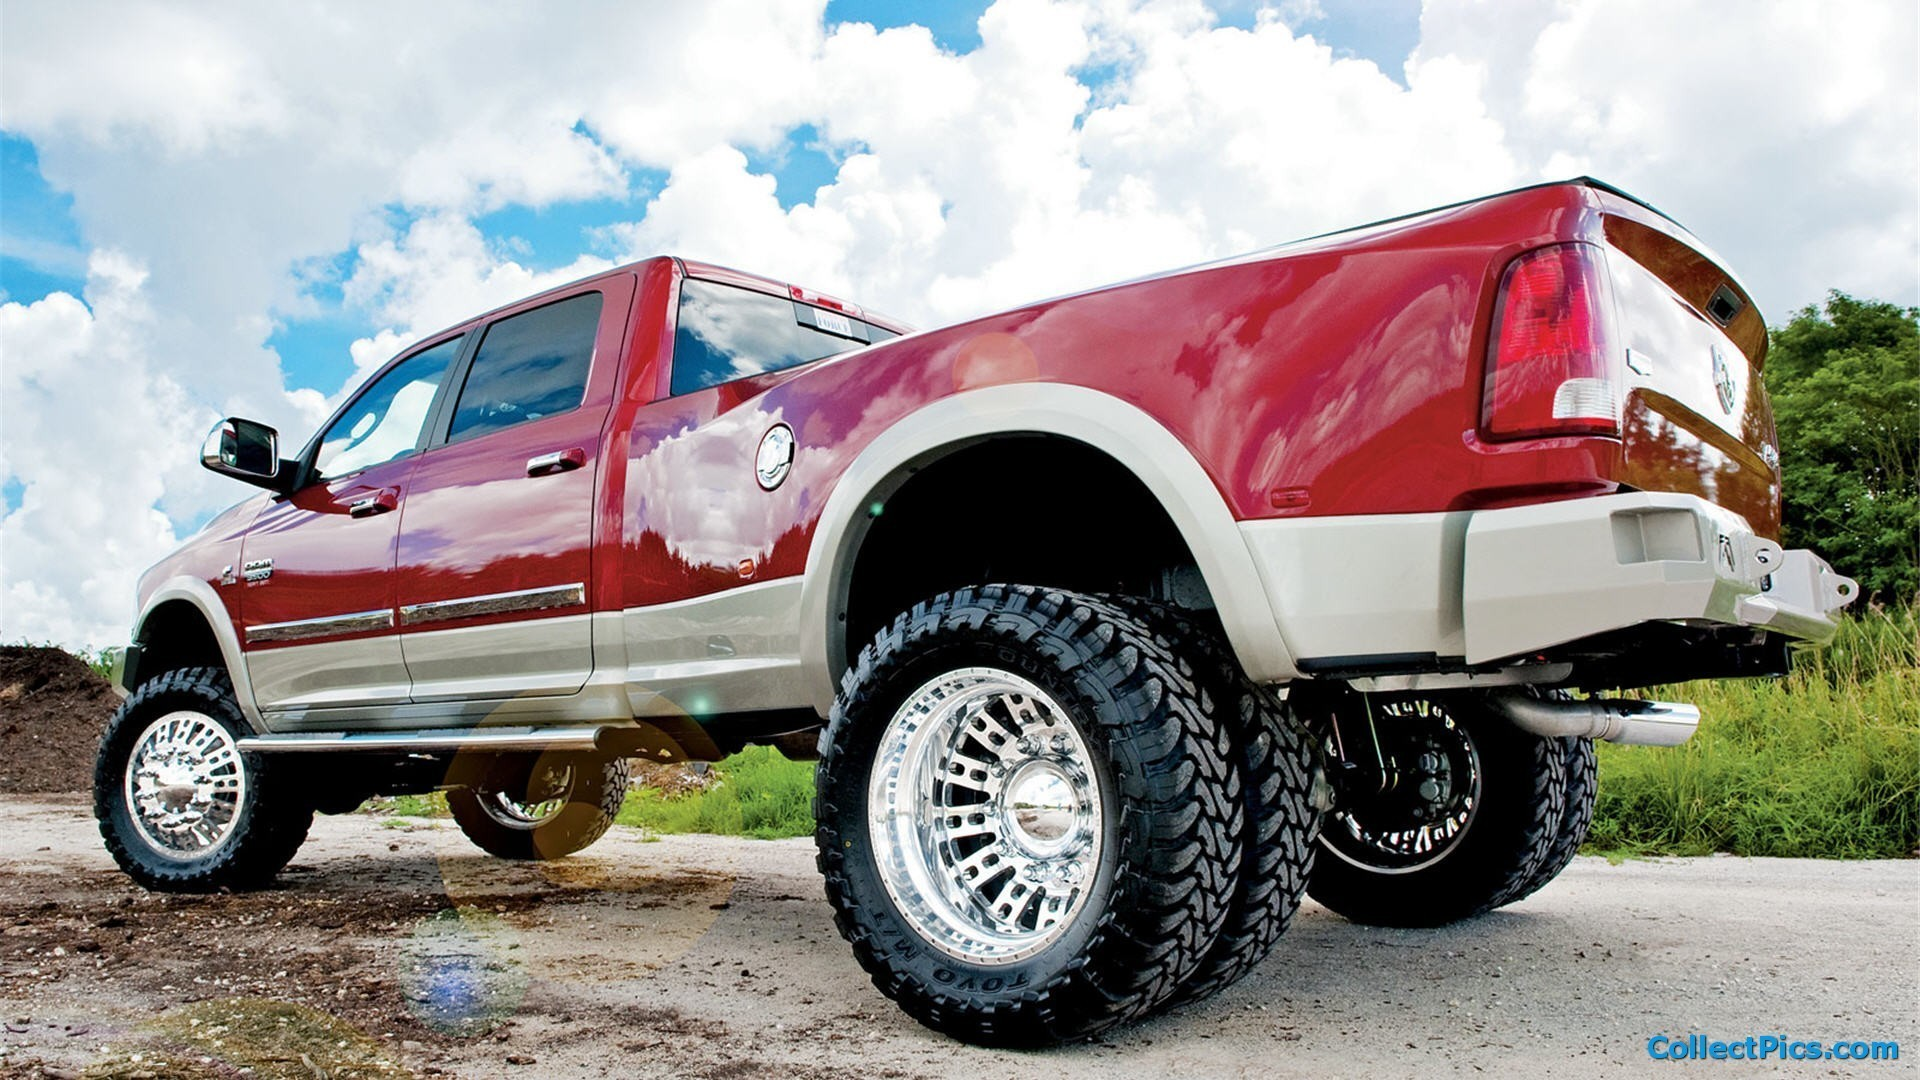 1920x1080   Lifted Truck Wallpaper · Download · Cool .